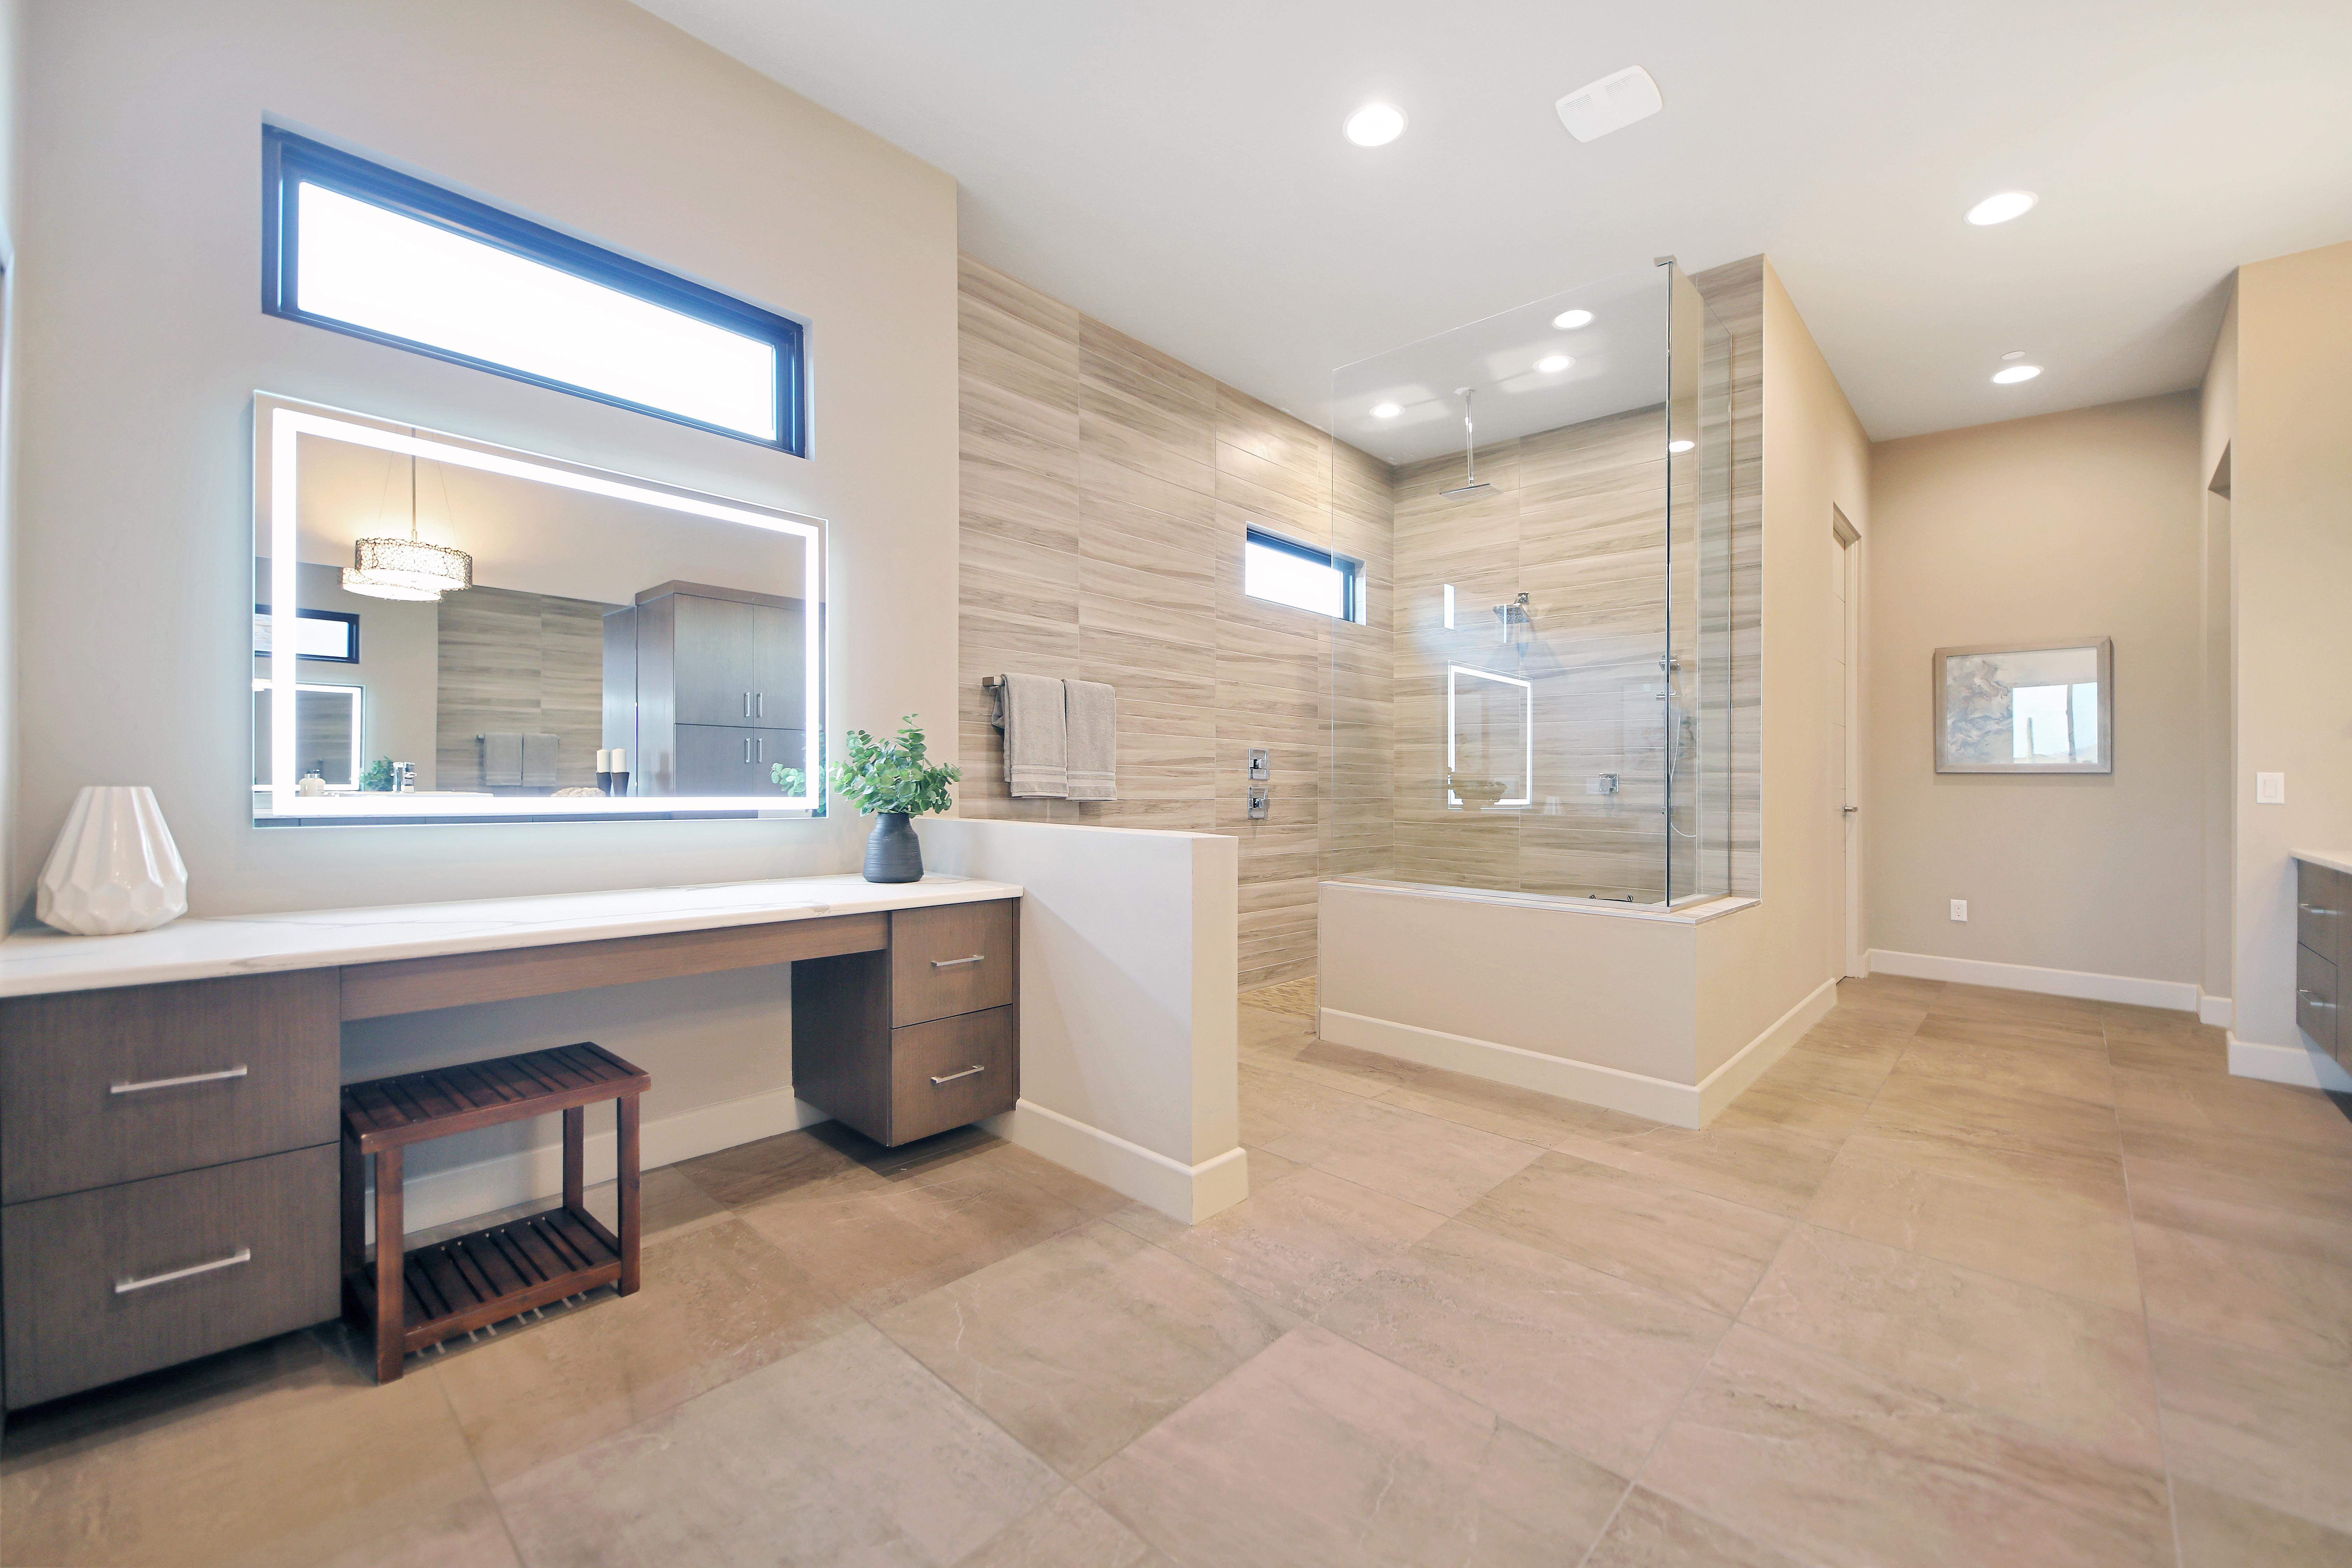 Bathroom featured in the Double Eagle By Fairfield Homes in Tucson, AZ